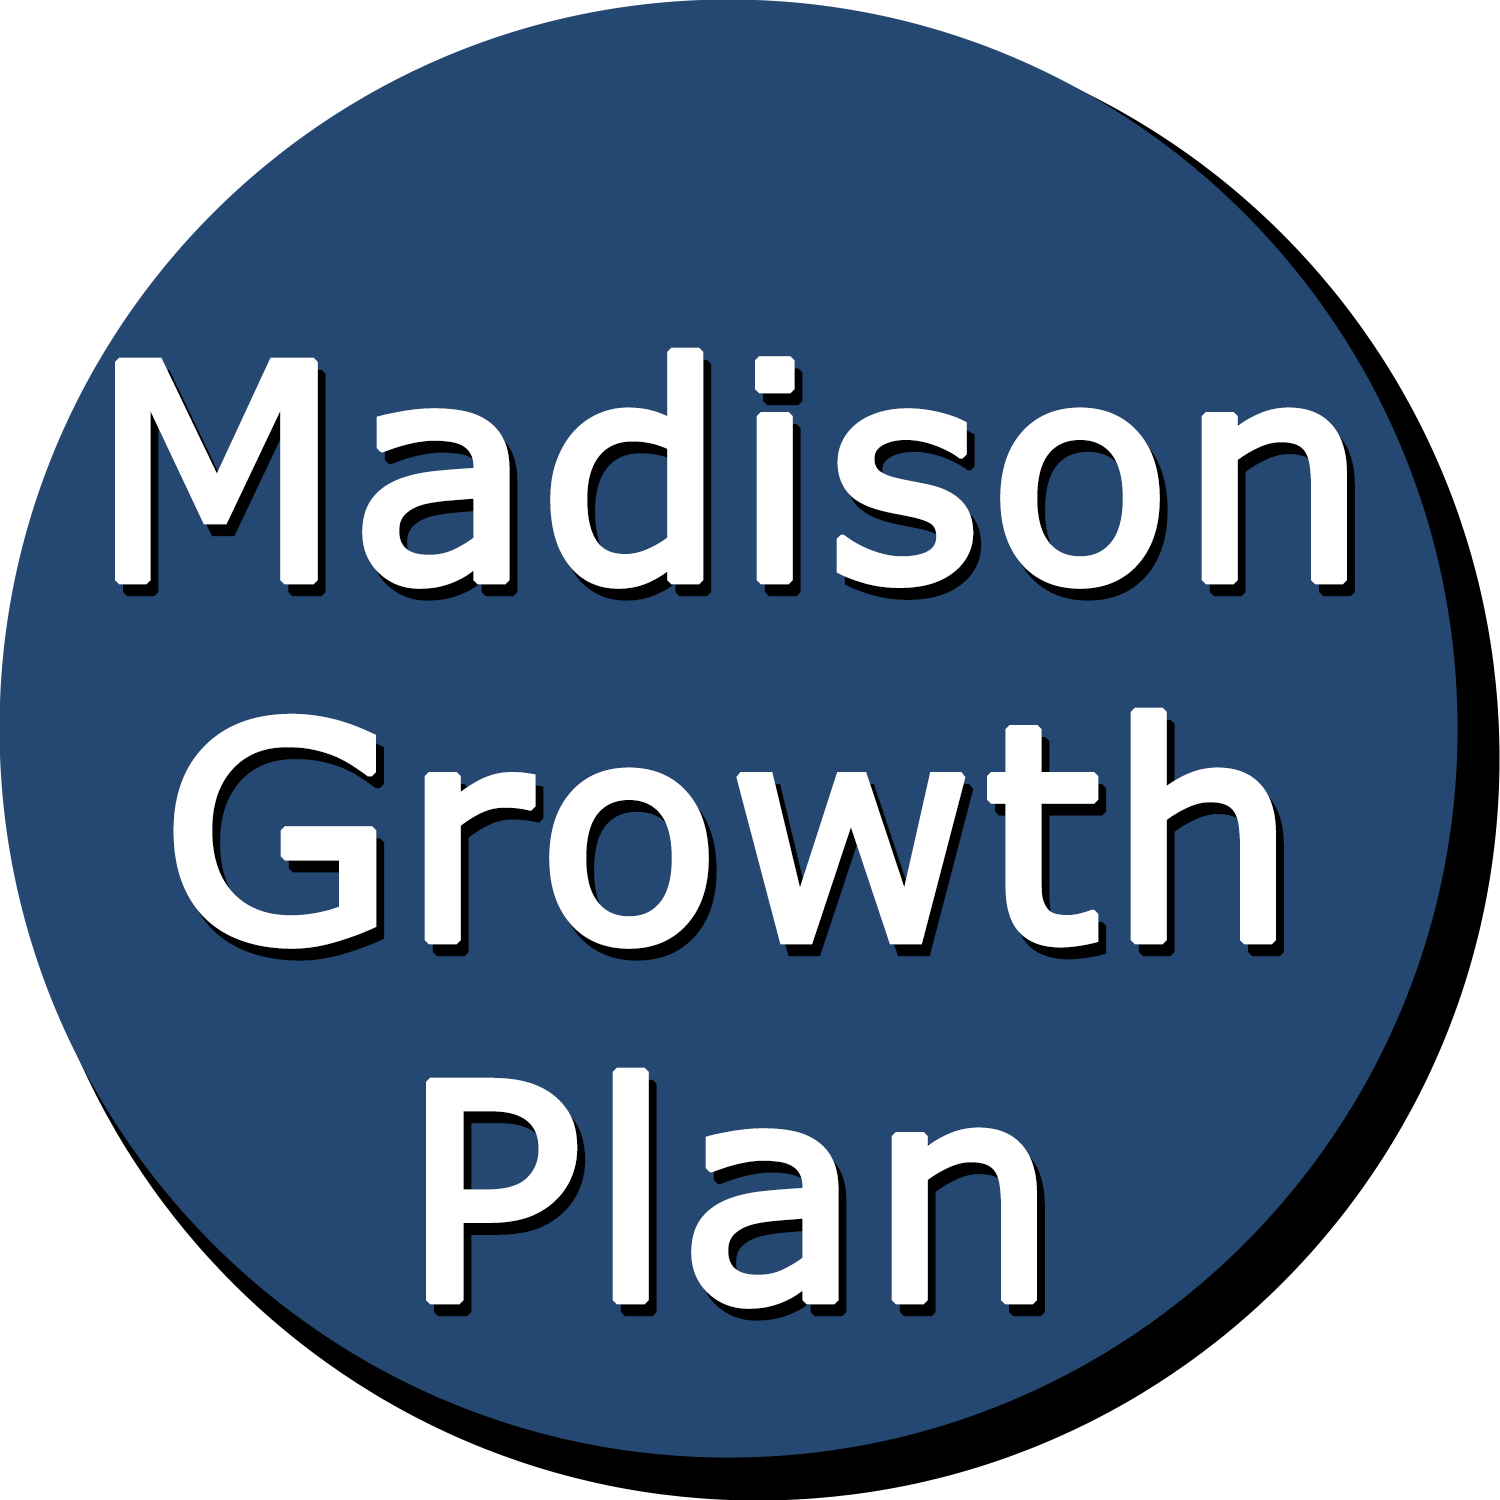 Madison Growth Plan Button